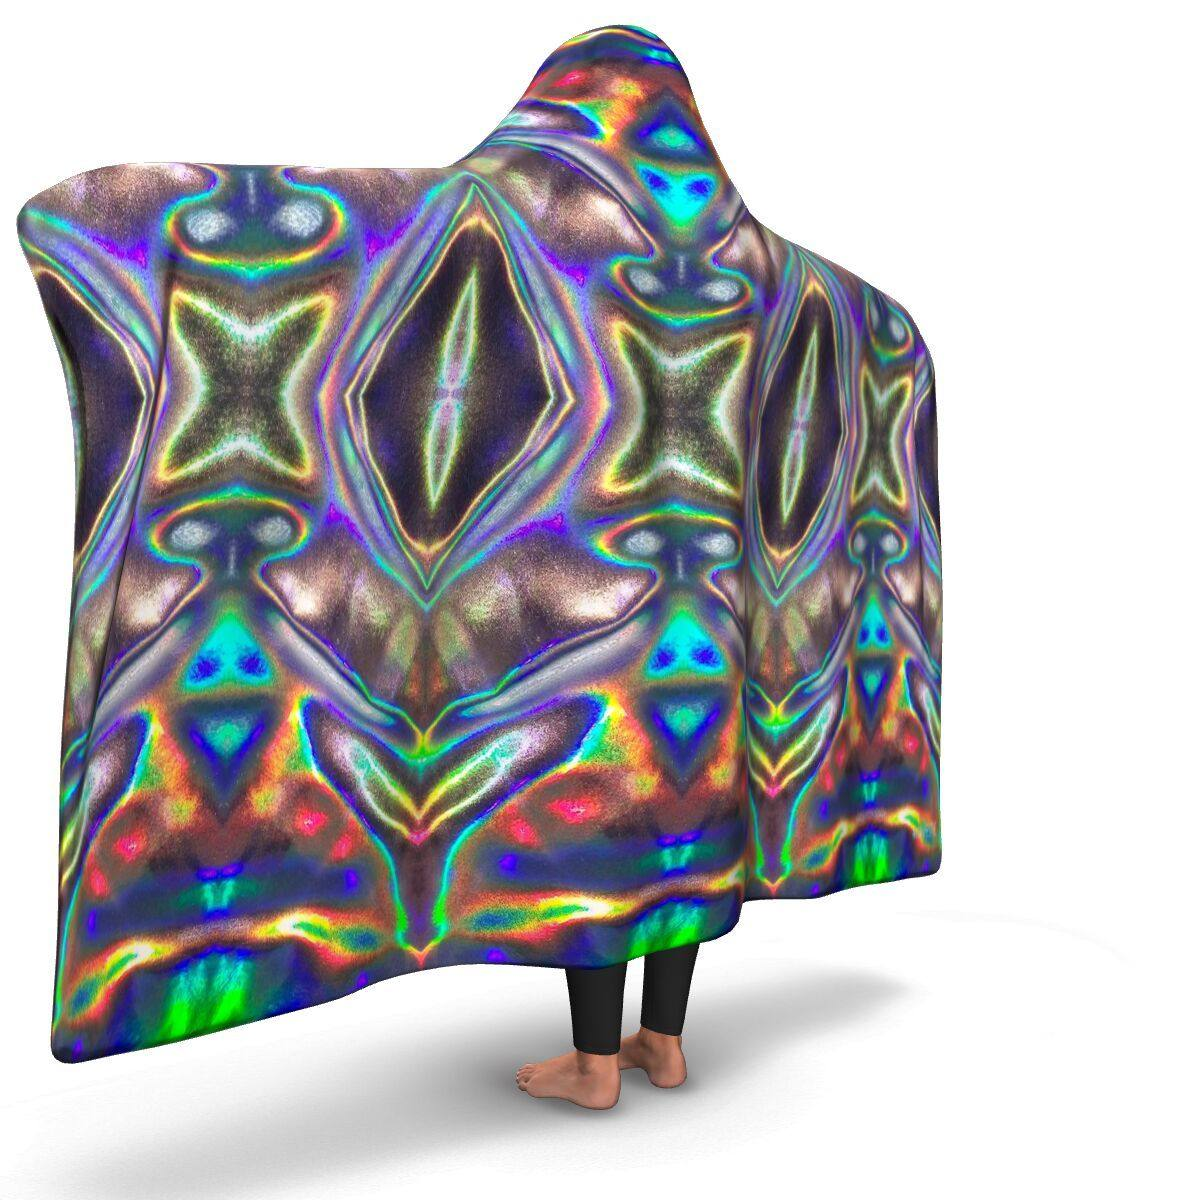 HOLOGRAPHIC PRINT PREMIUM HOODED BLANKET with WRIST STRAPS